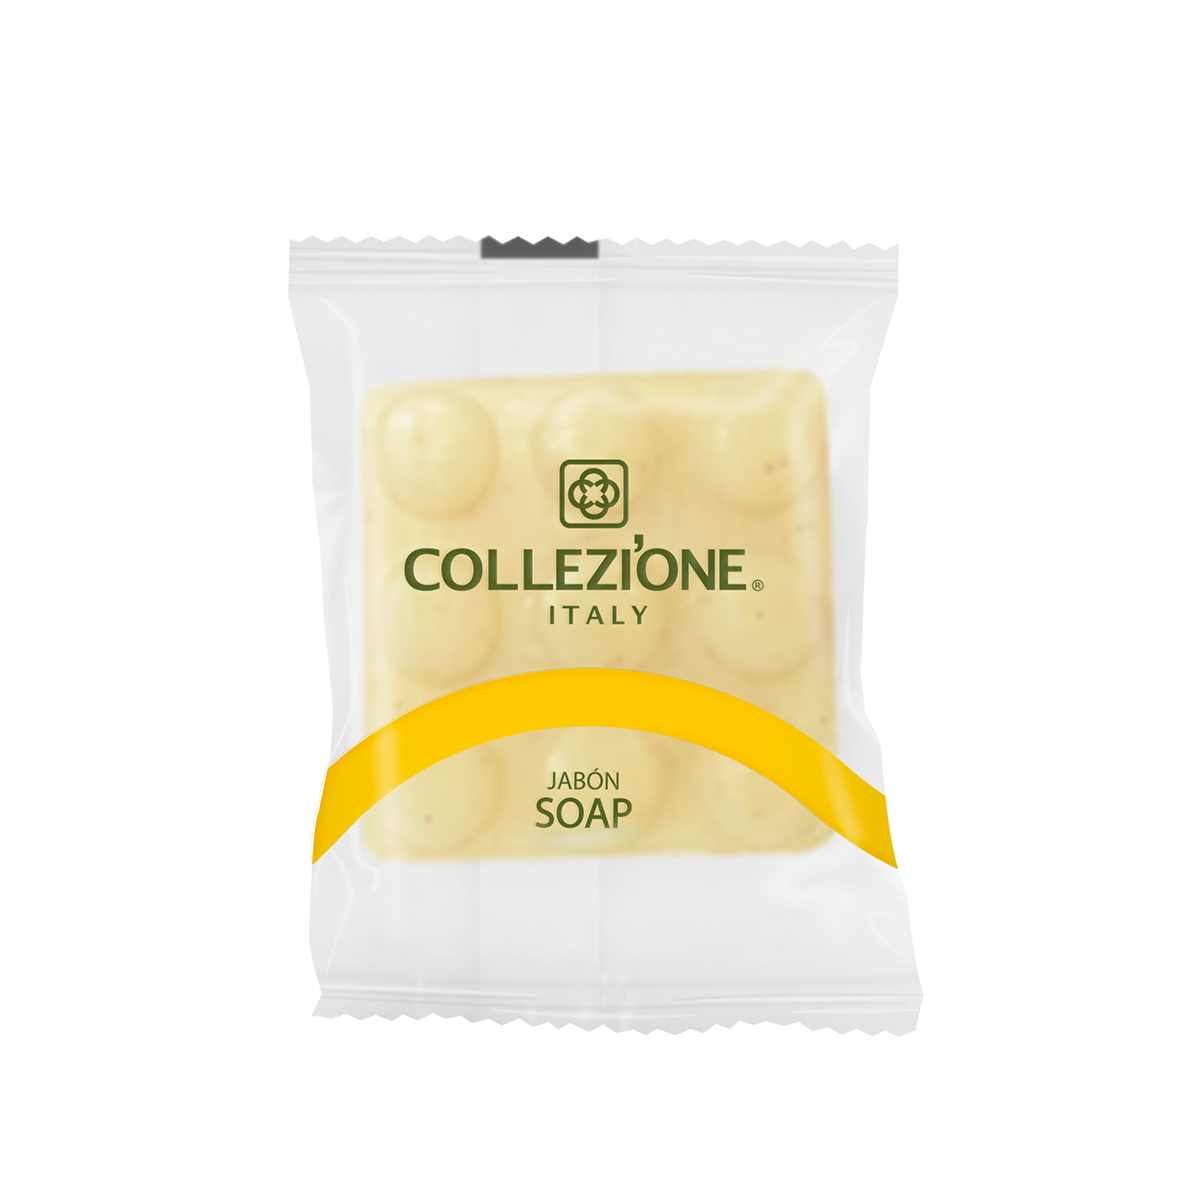 Jabón con relieves 40 g Collezi'one